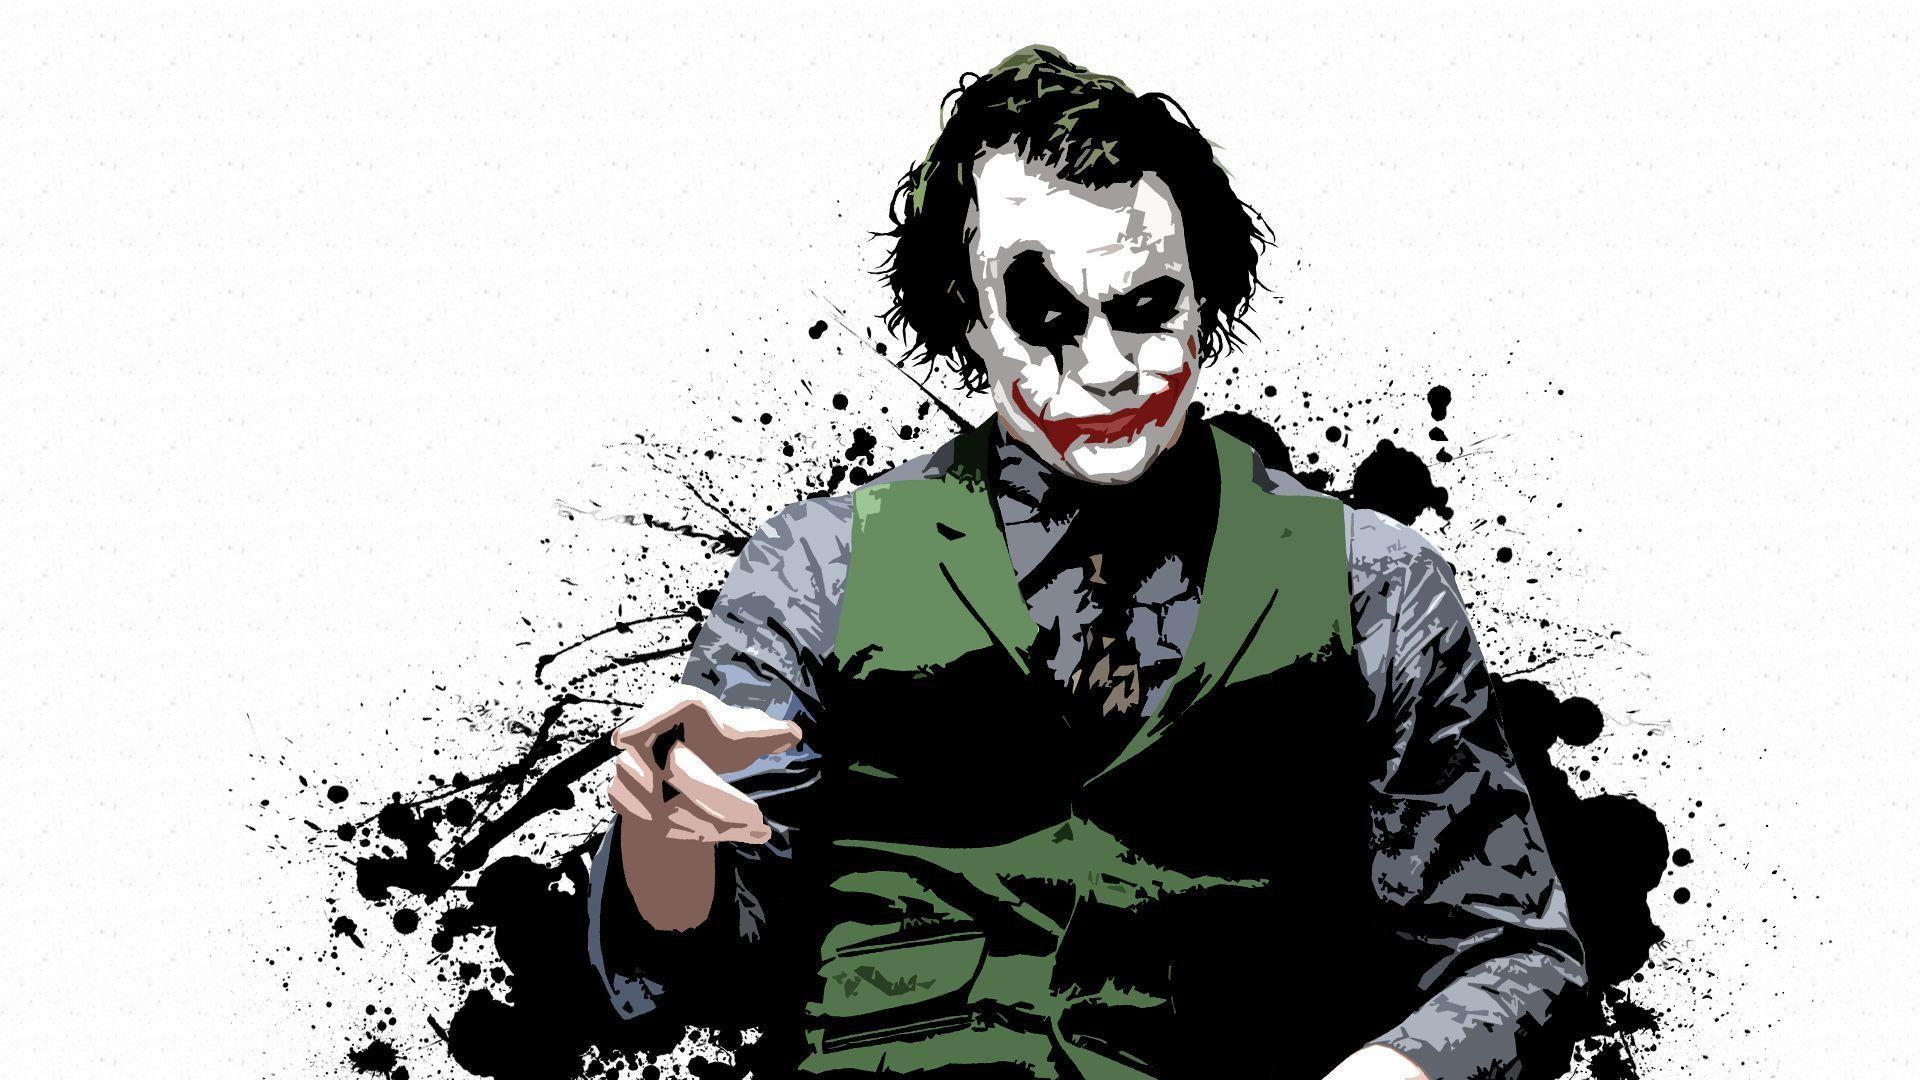 joker hd wallpapers wallpaper cave ForJoker Immagini Hd